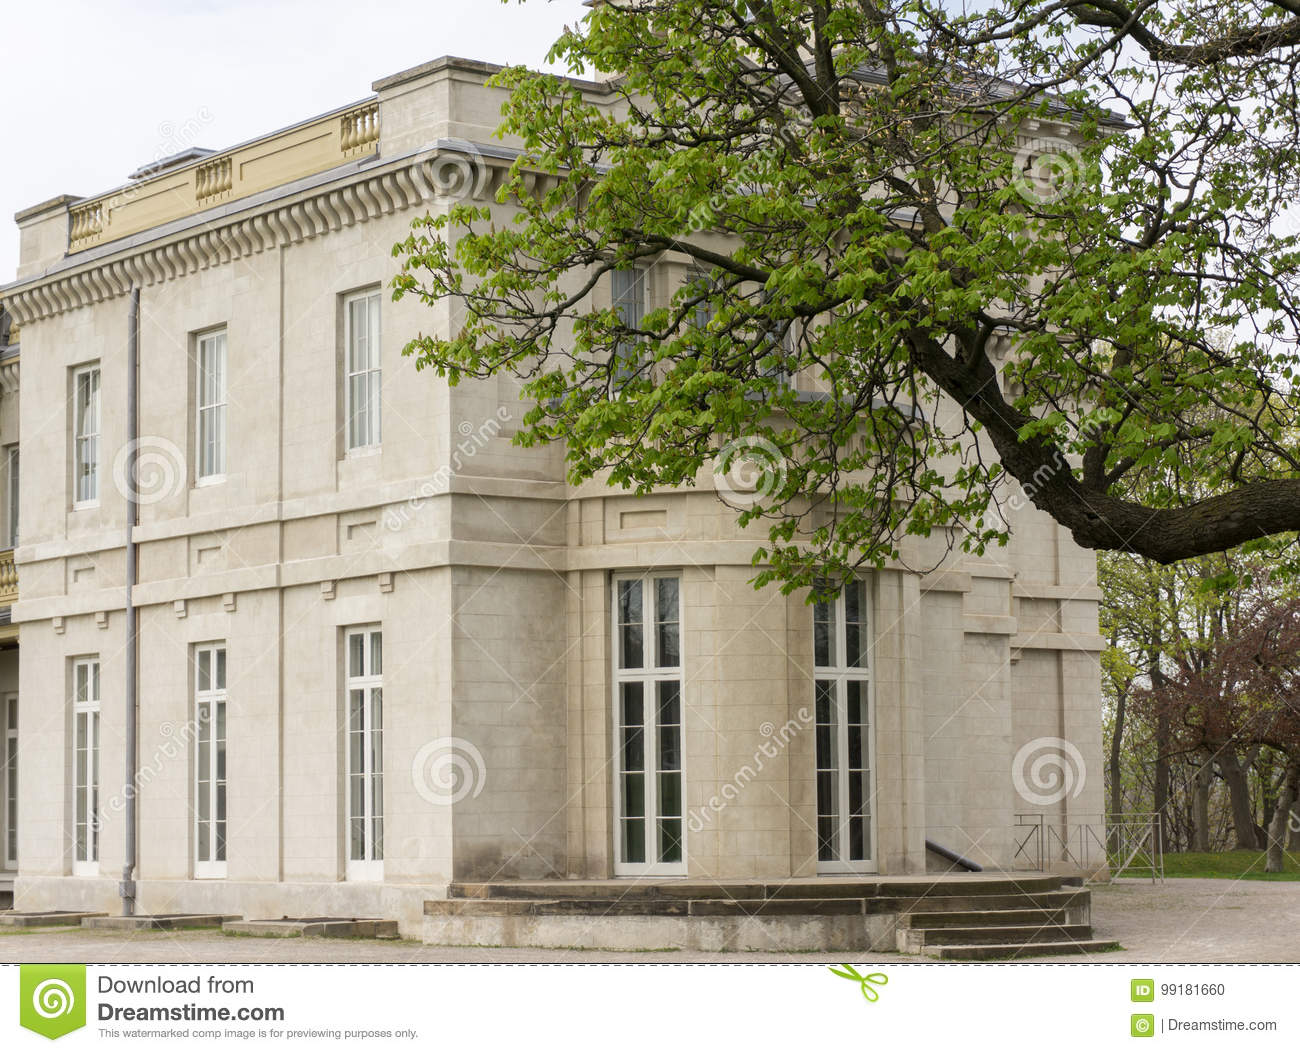 Dundurn park and castle